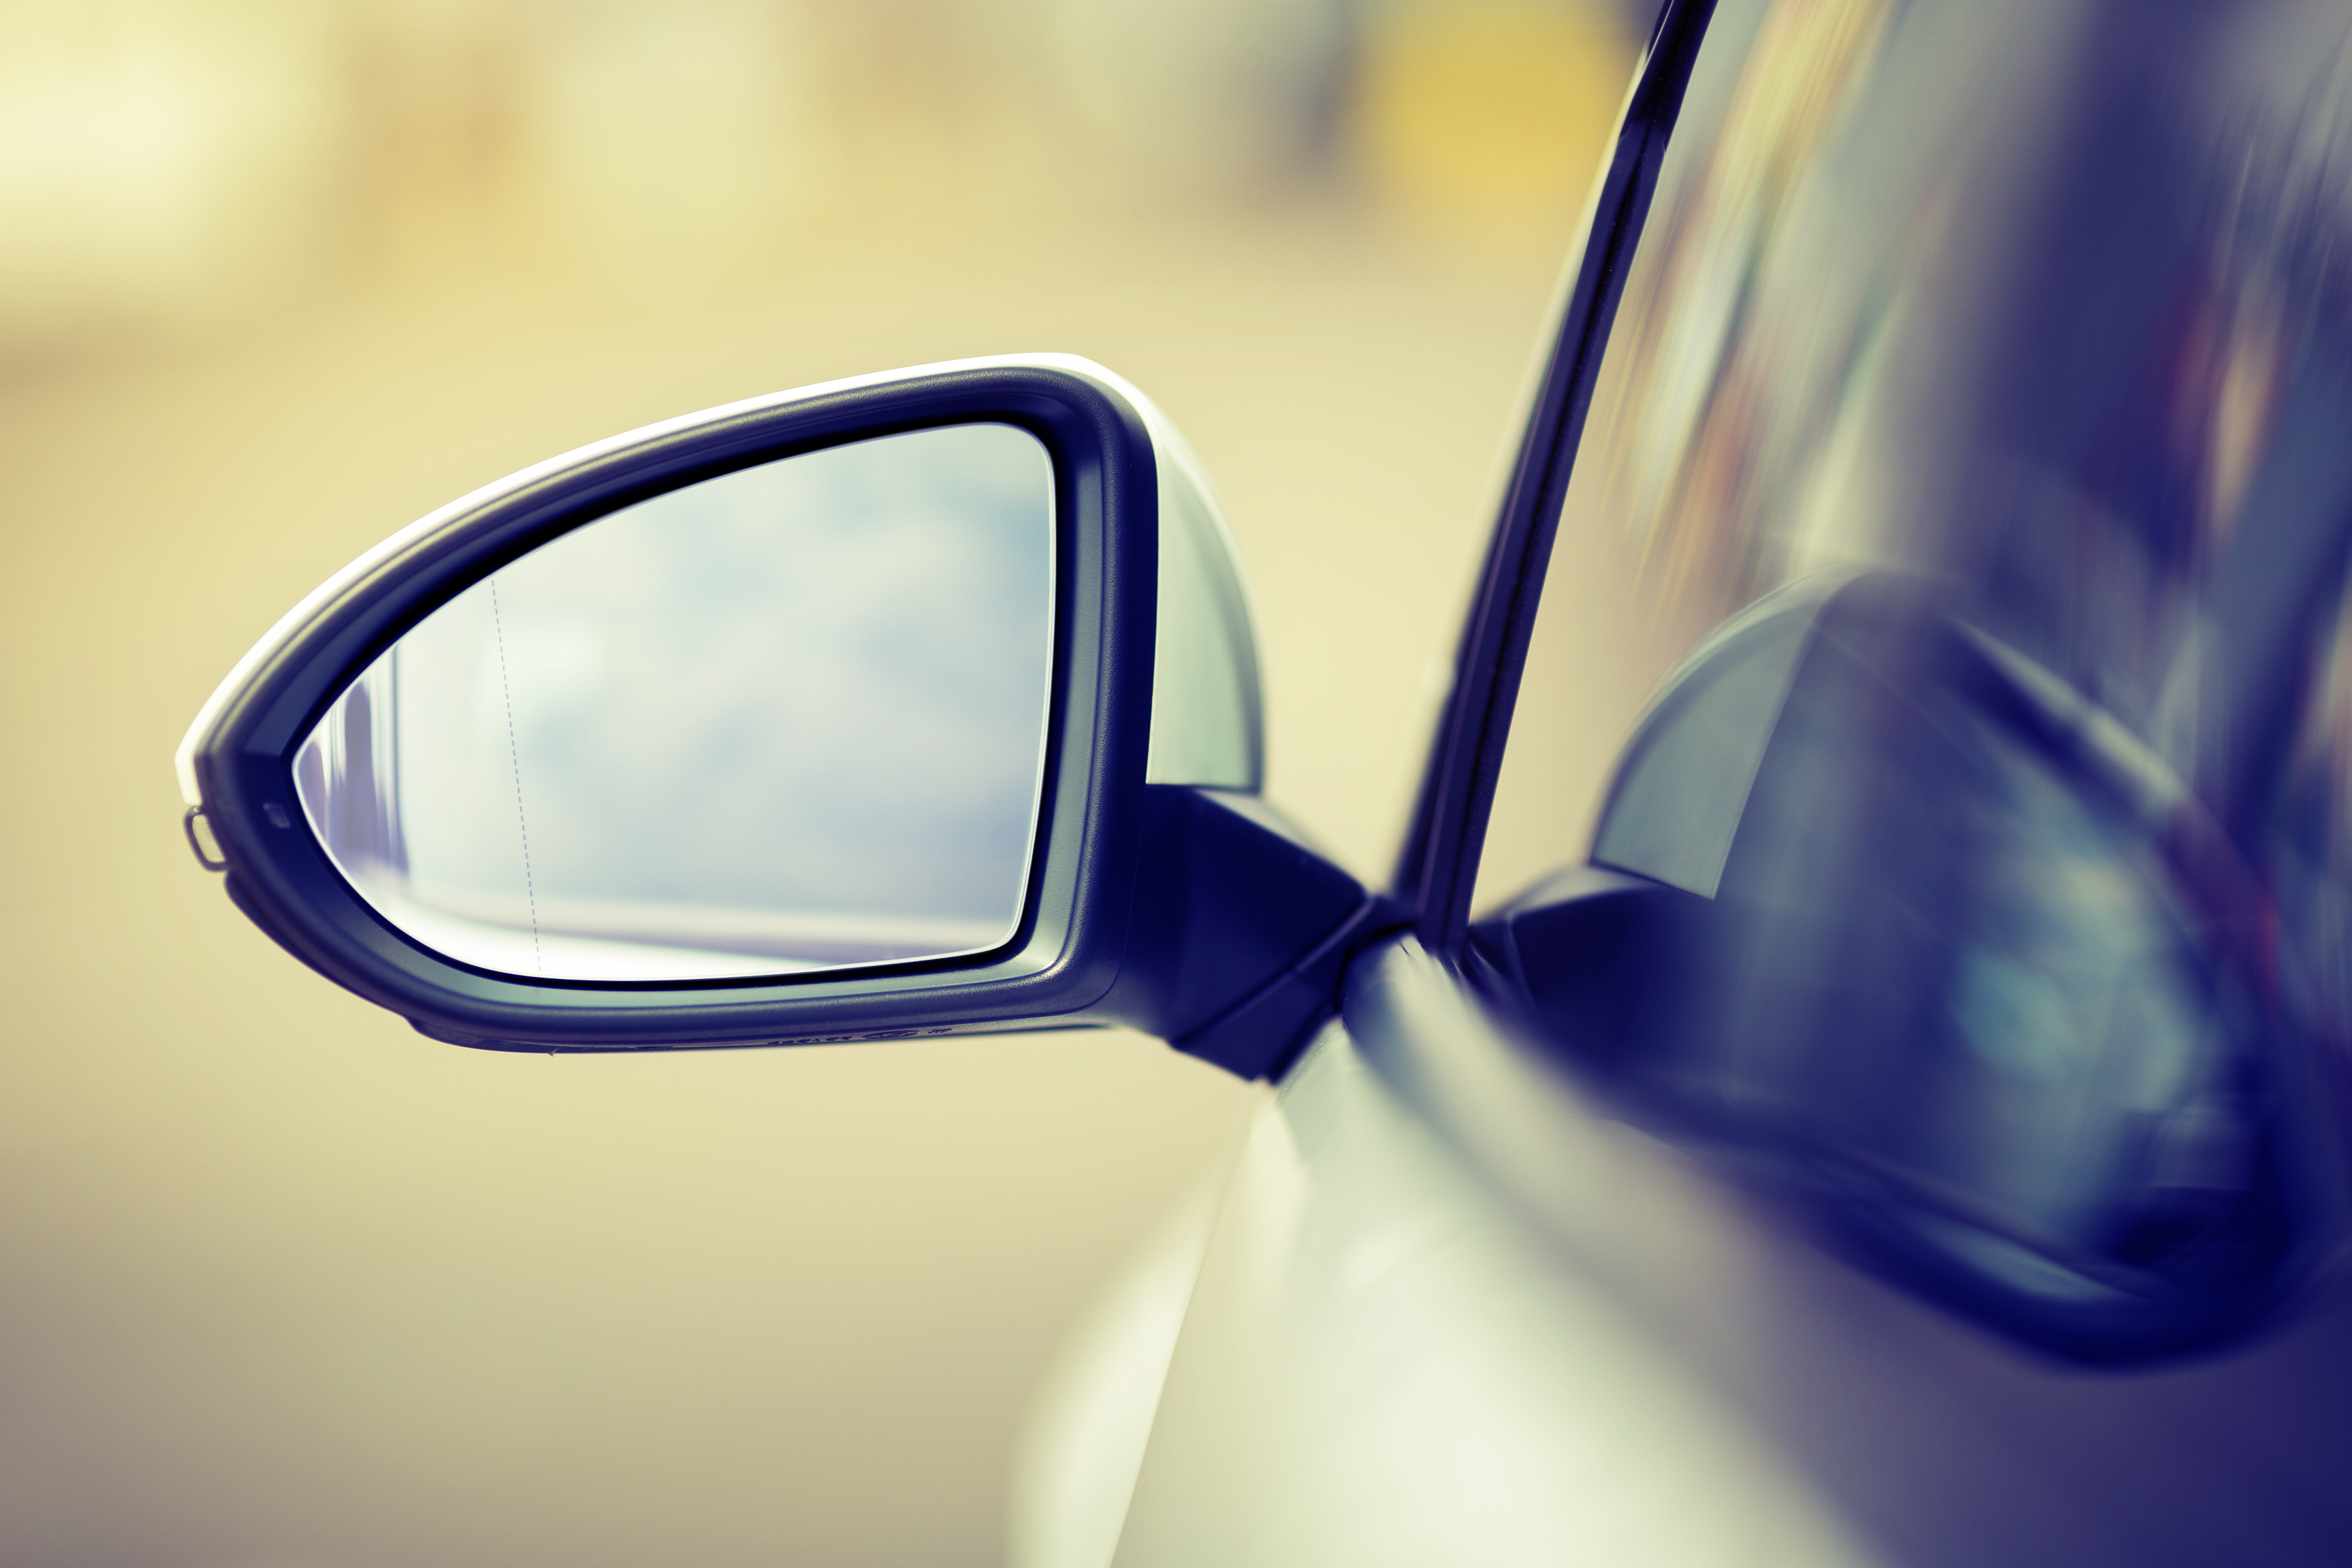 Side Mirror Replacement Ecv Car Service Singapore